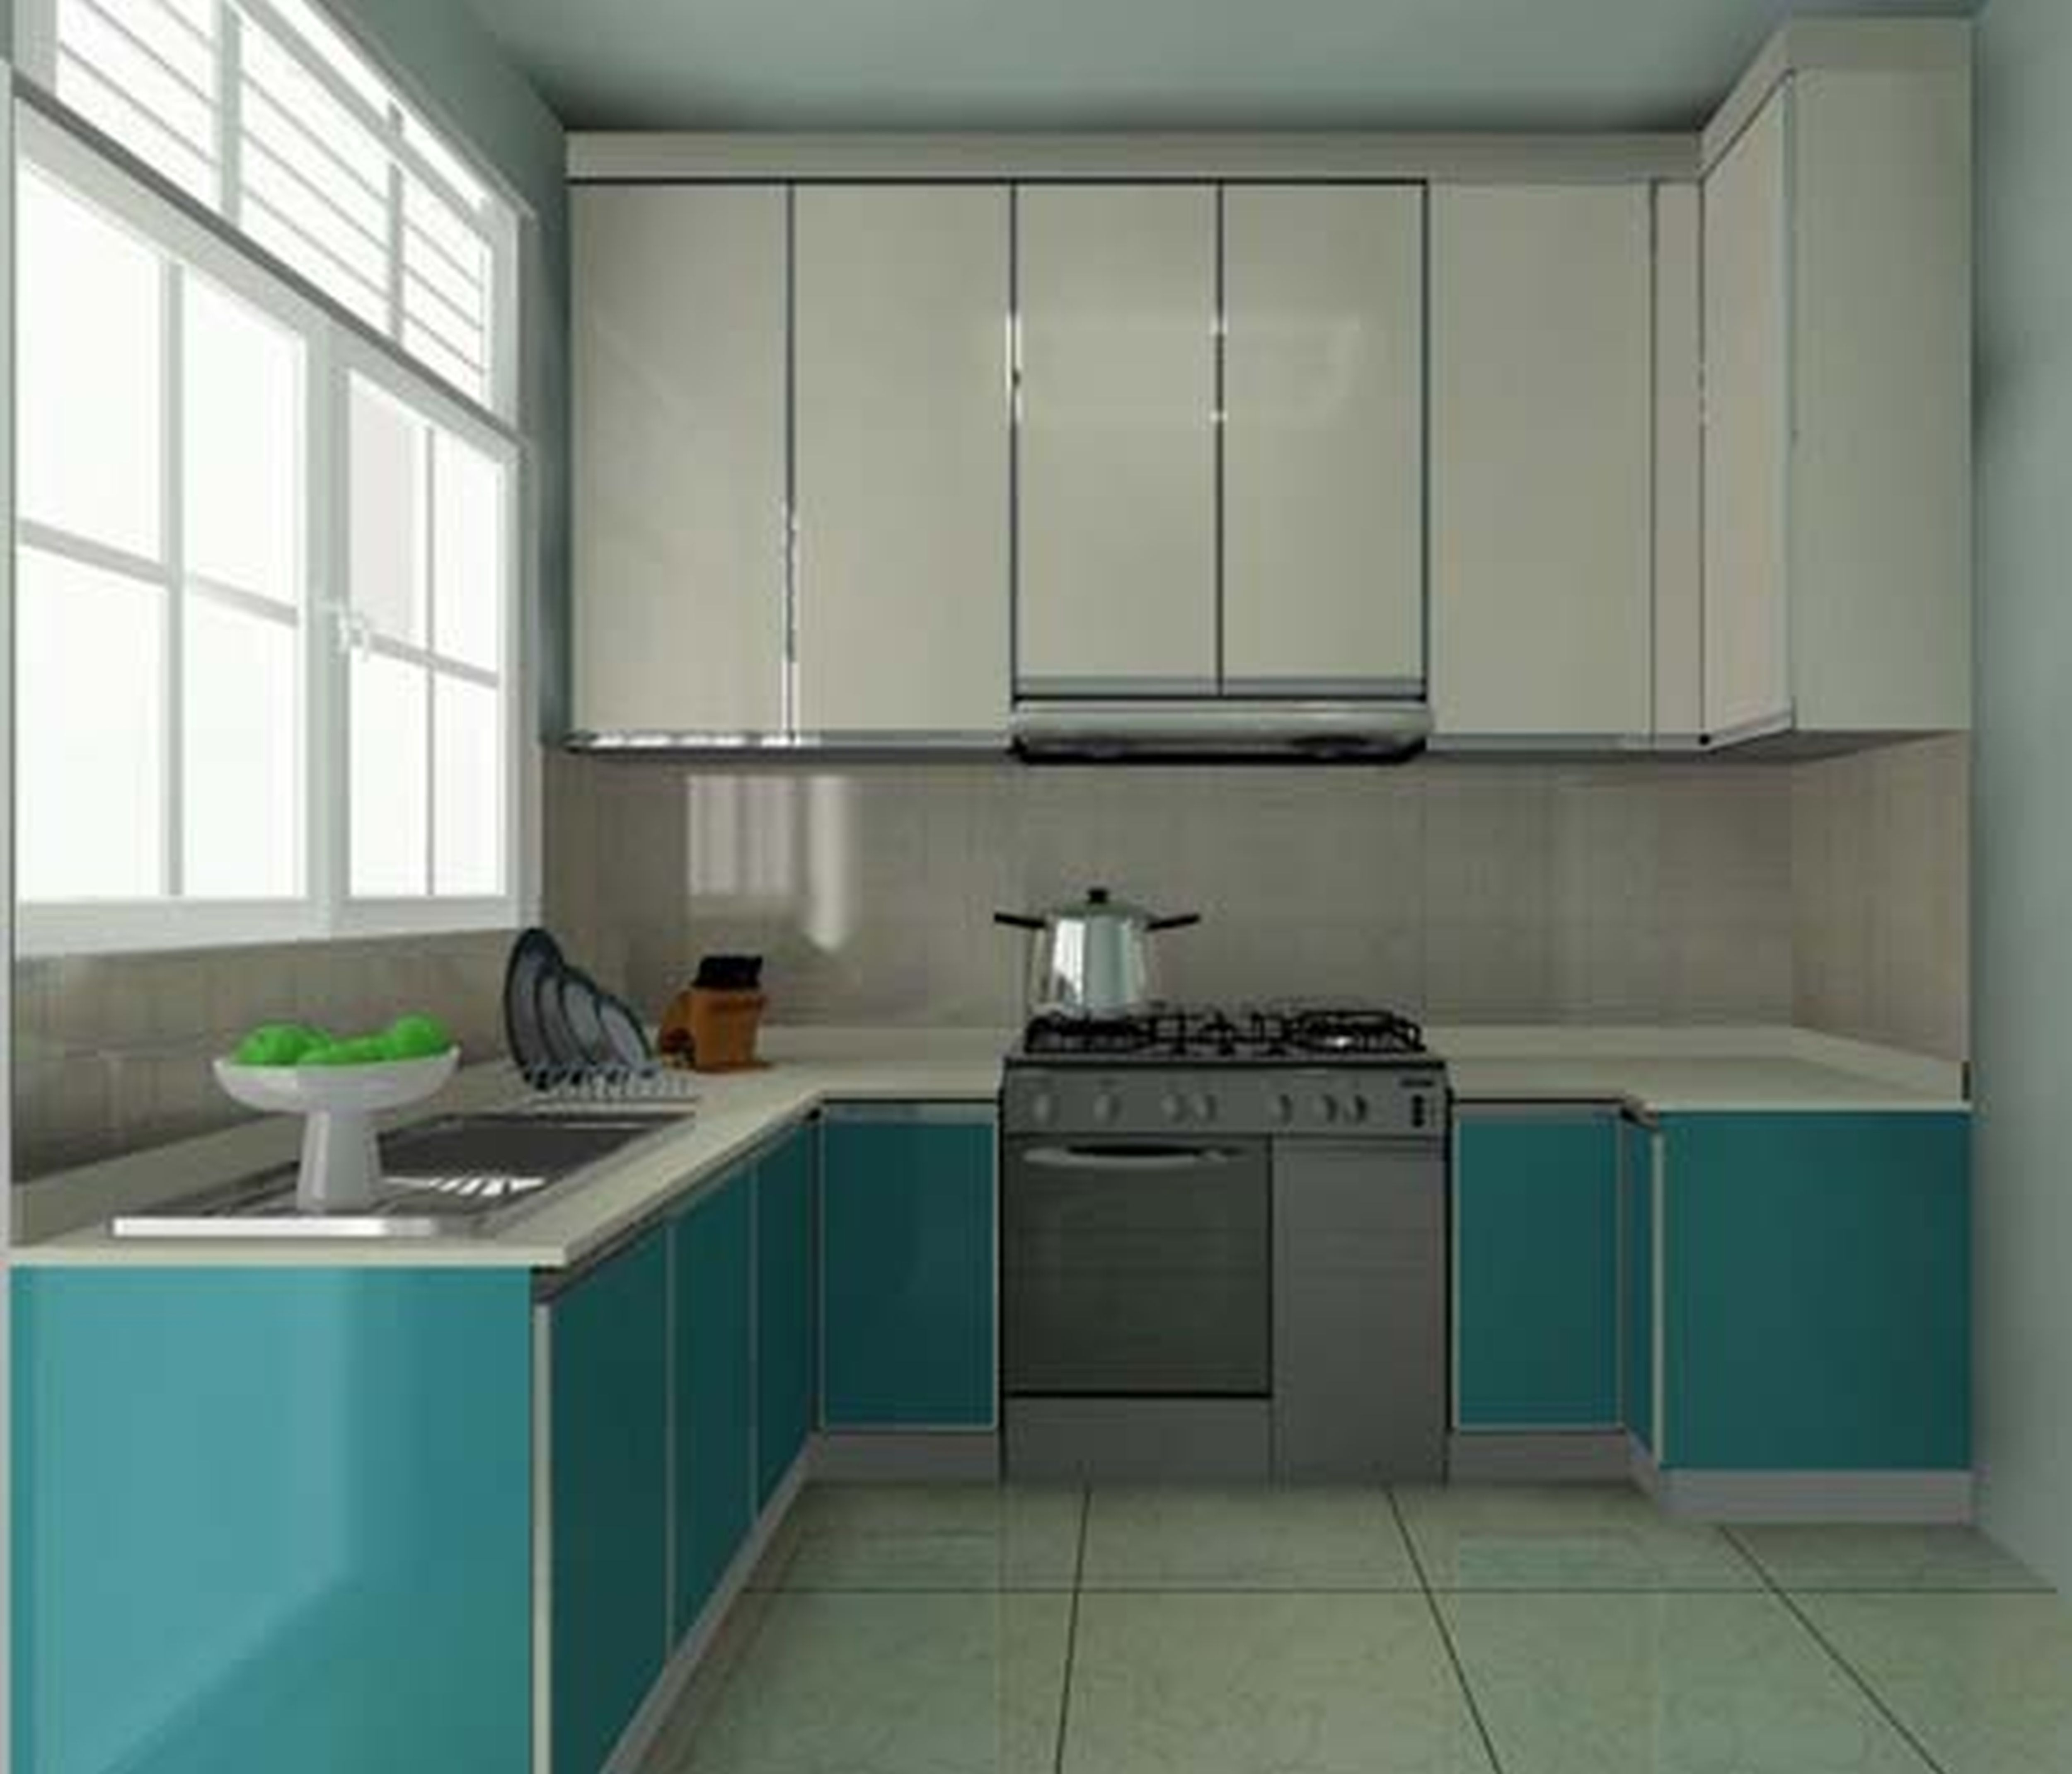 Kitchen Cabinets Design For Small Space